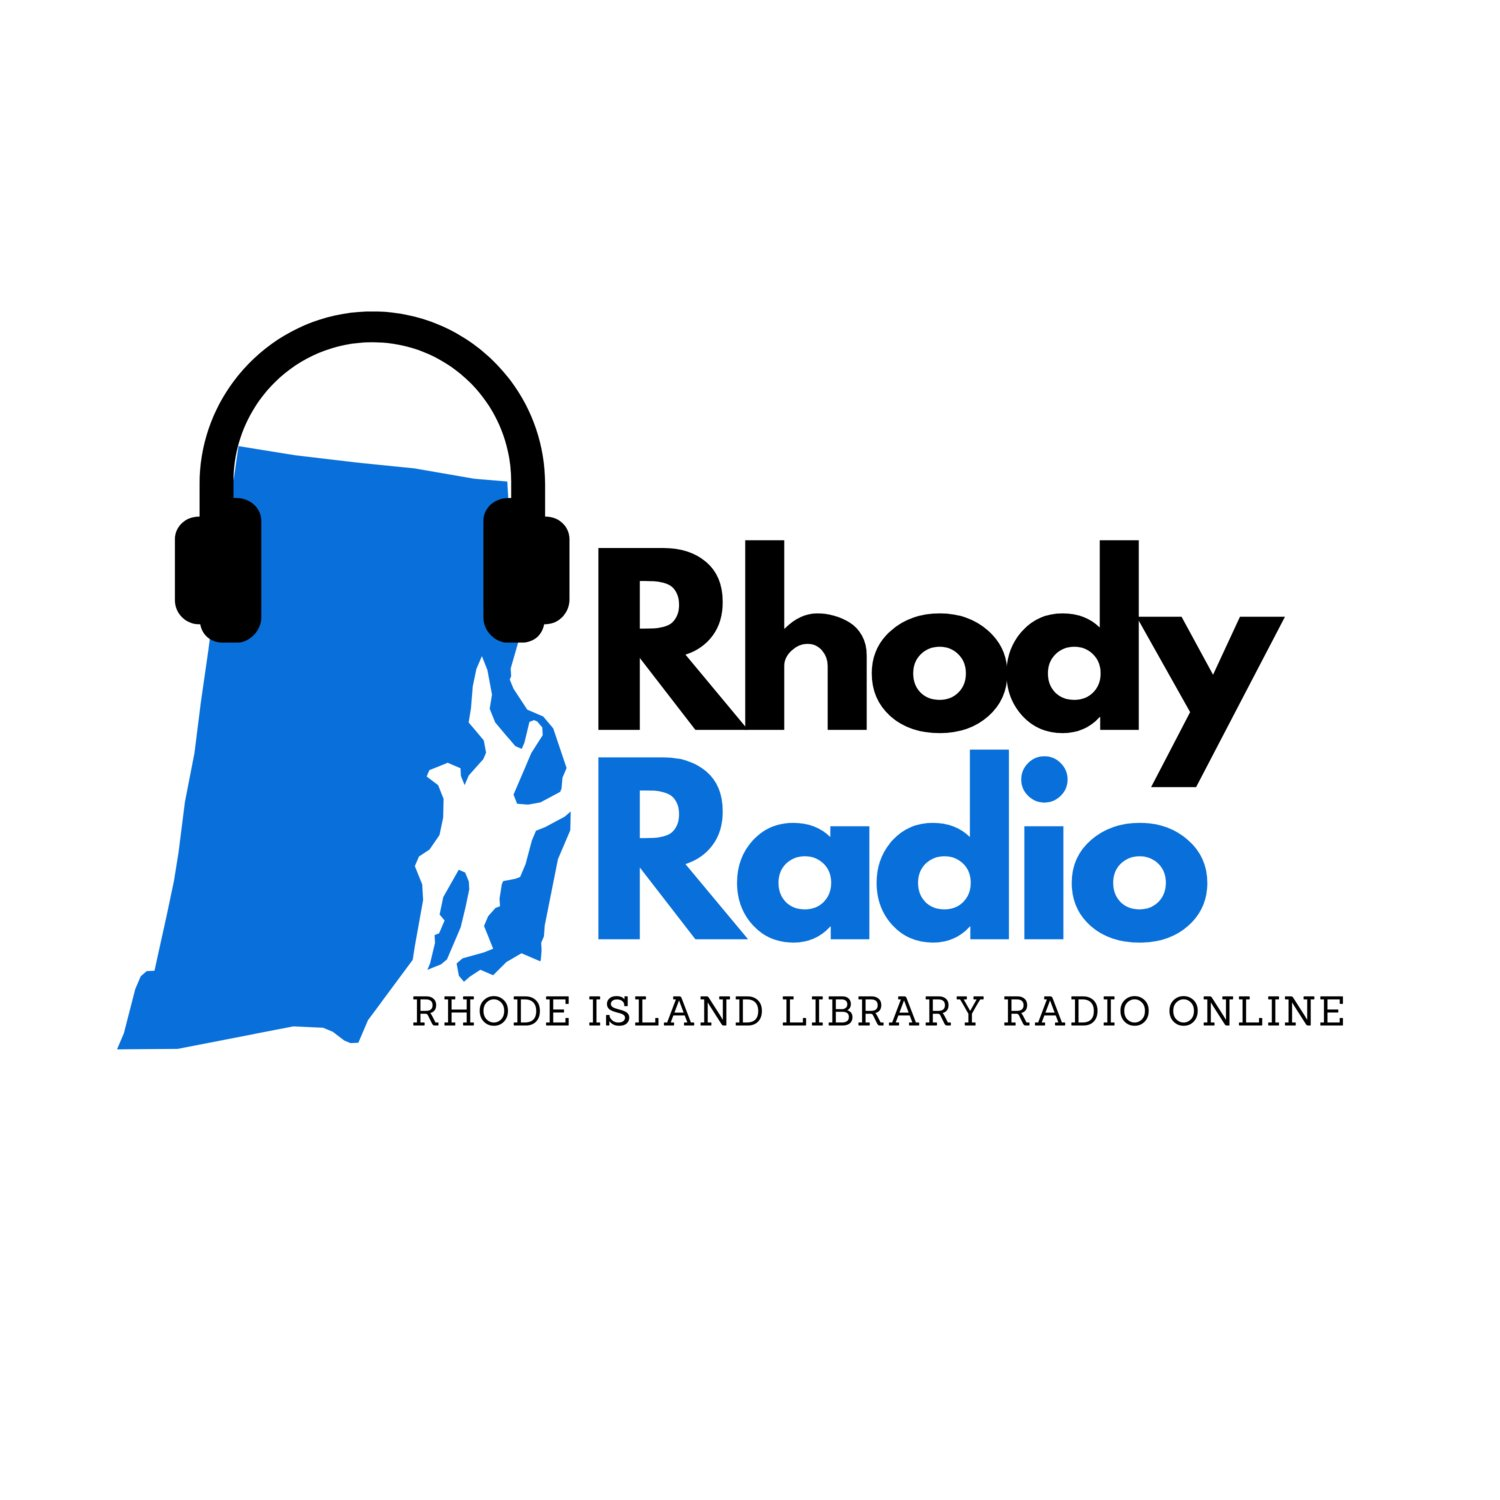 Rhody Radio Connects Rhode Island Libraries with Listeners